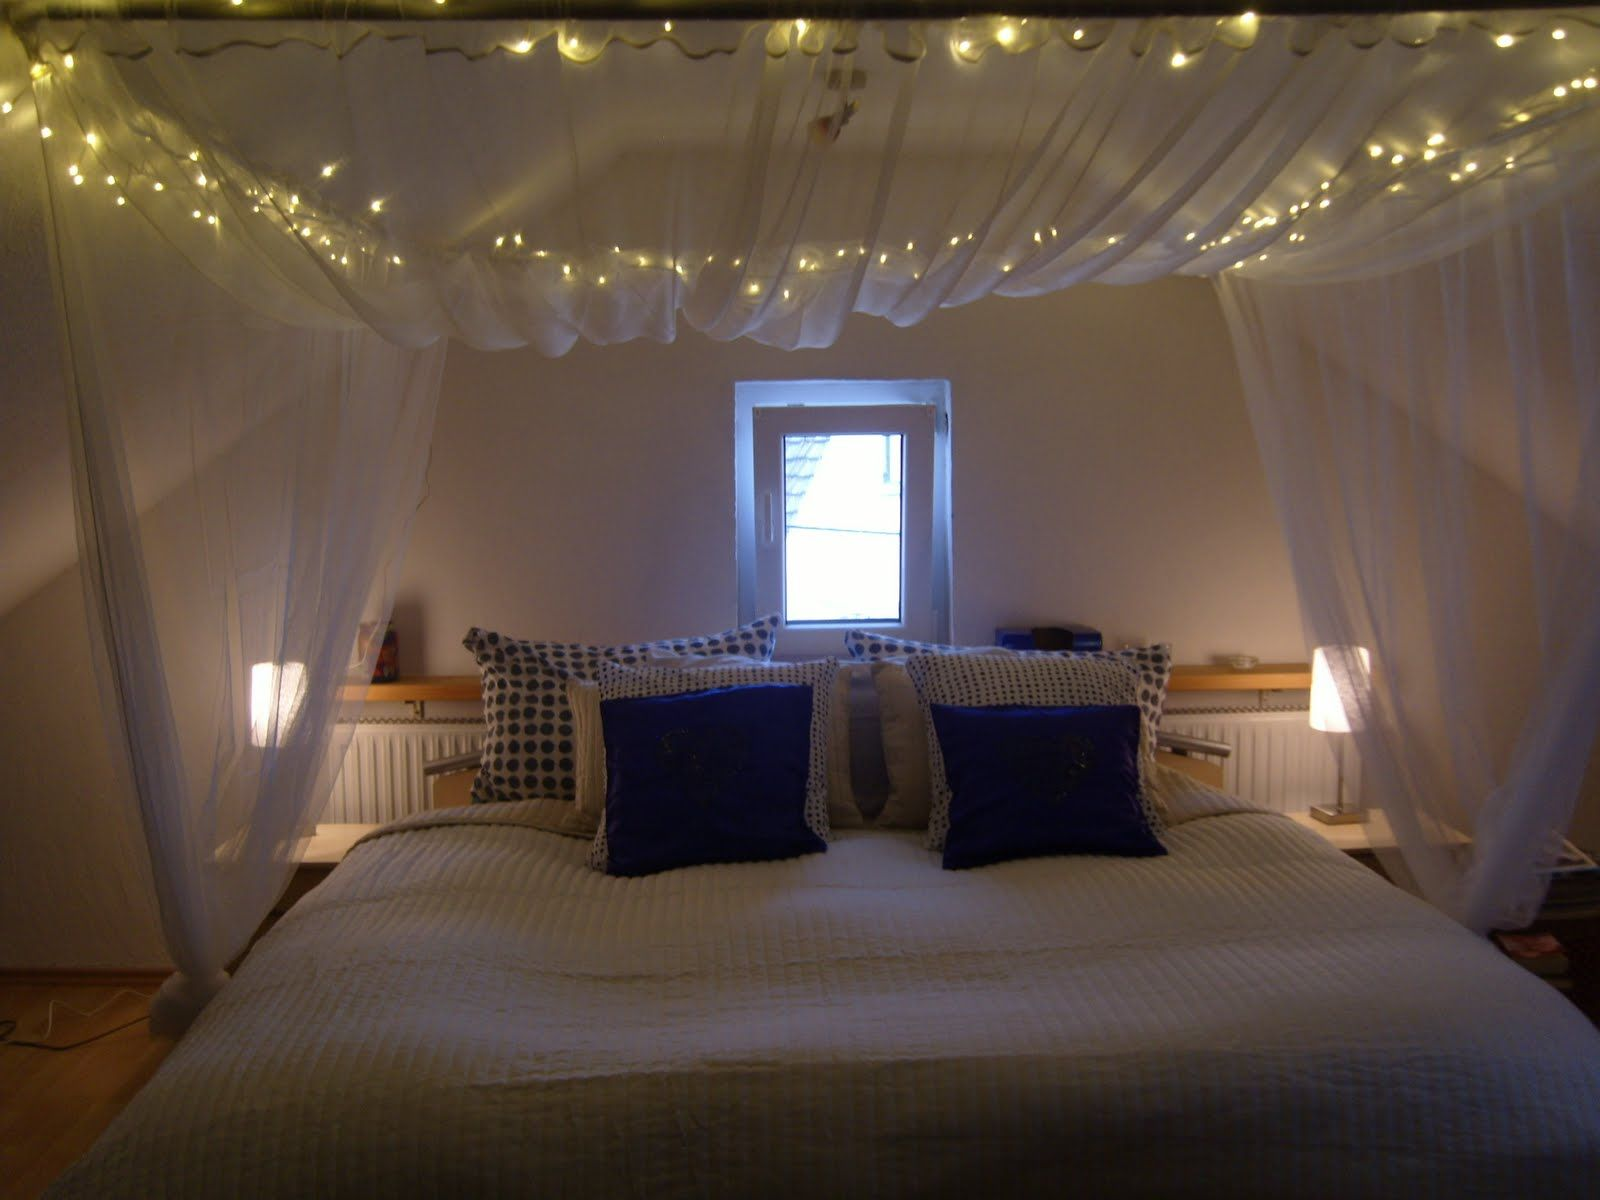 Canopy bed with lights - Do It Yourself Headboards Ideas Have Always Wanted A Canopy Bed So This Weekend I